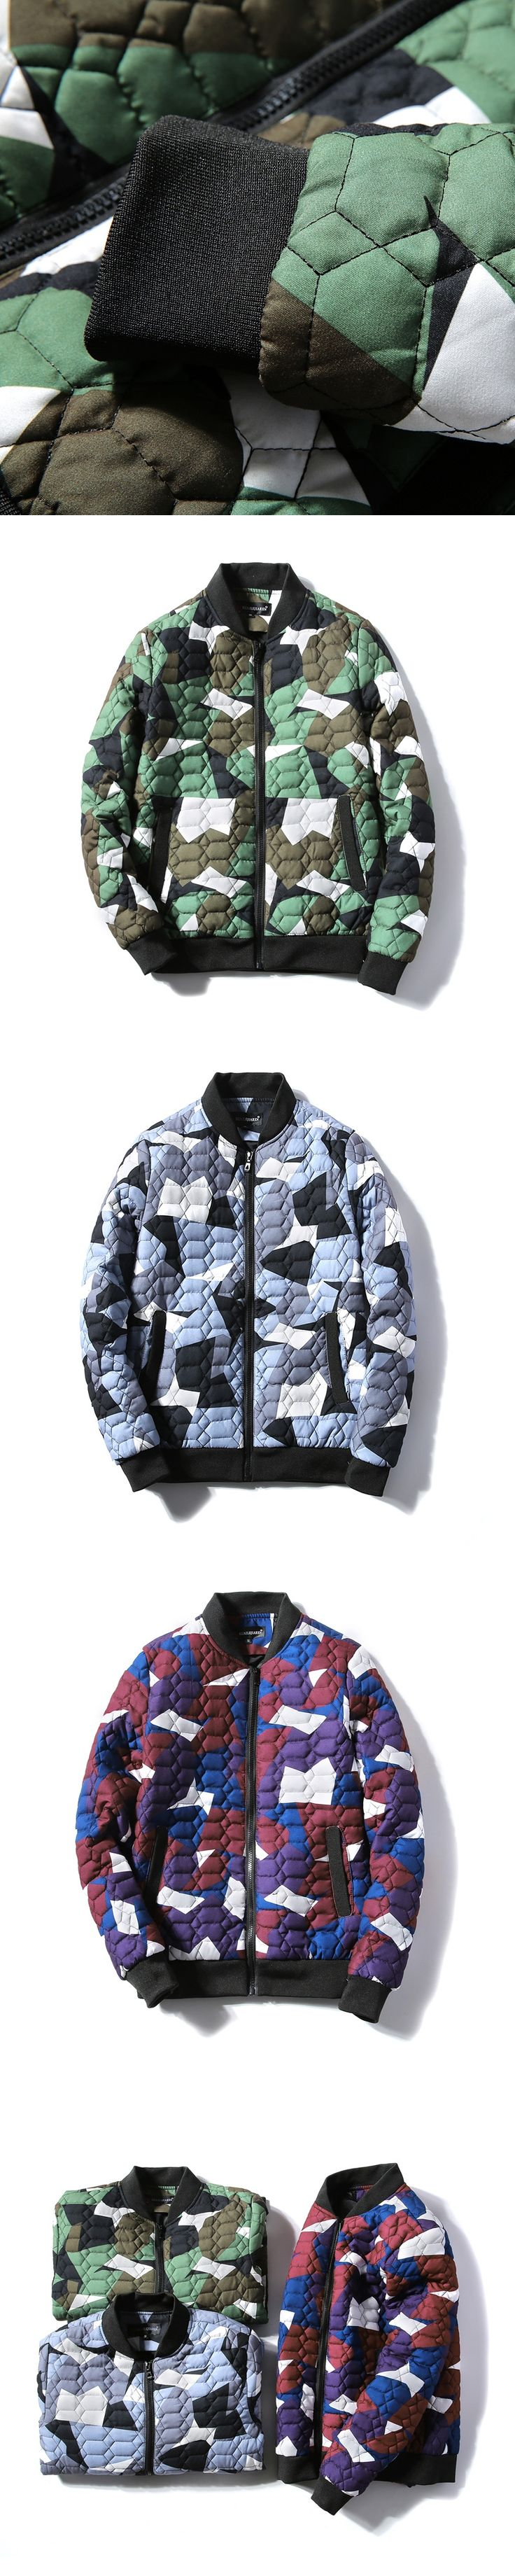 2017 new winter camouflage coat men's baseball uniform color thick warm padded jacket size young couple male fashion S-4XL